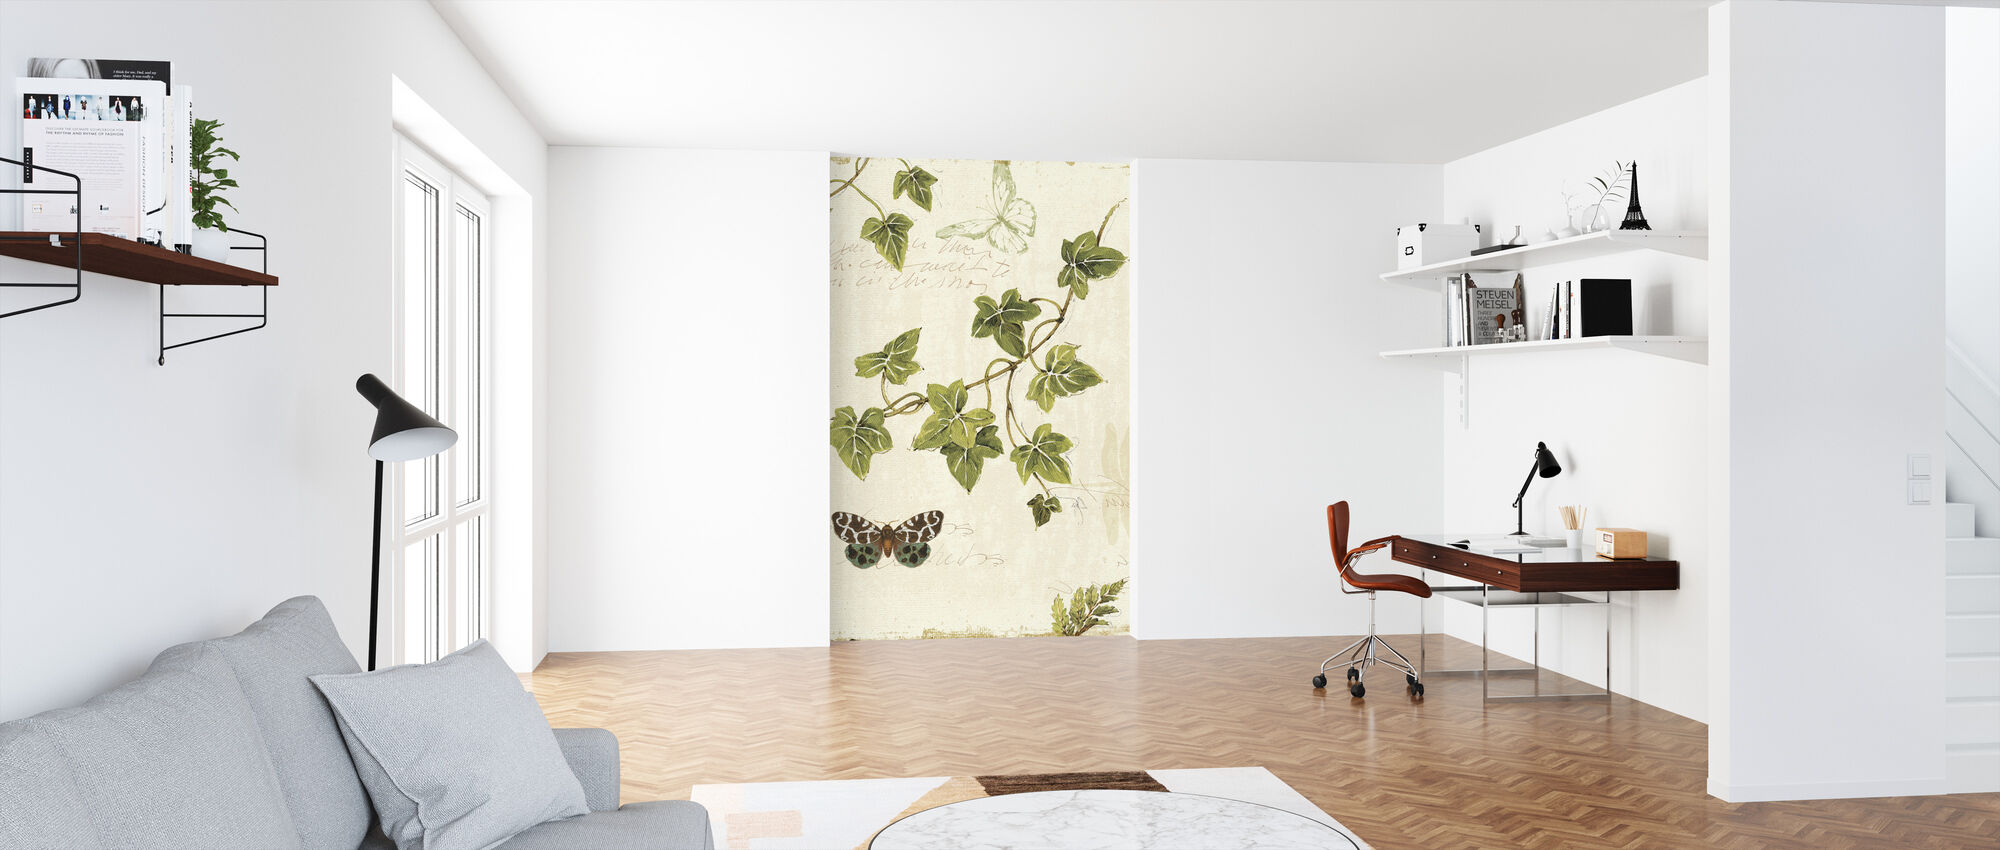 Ivies and Ferns 2 - Wallpaper - Office